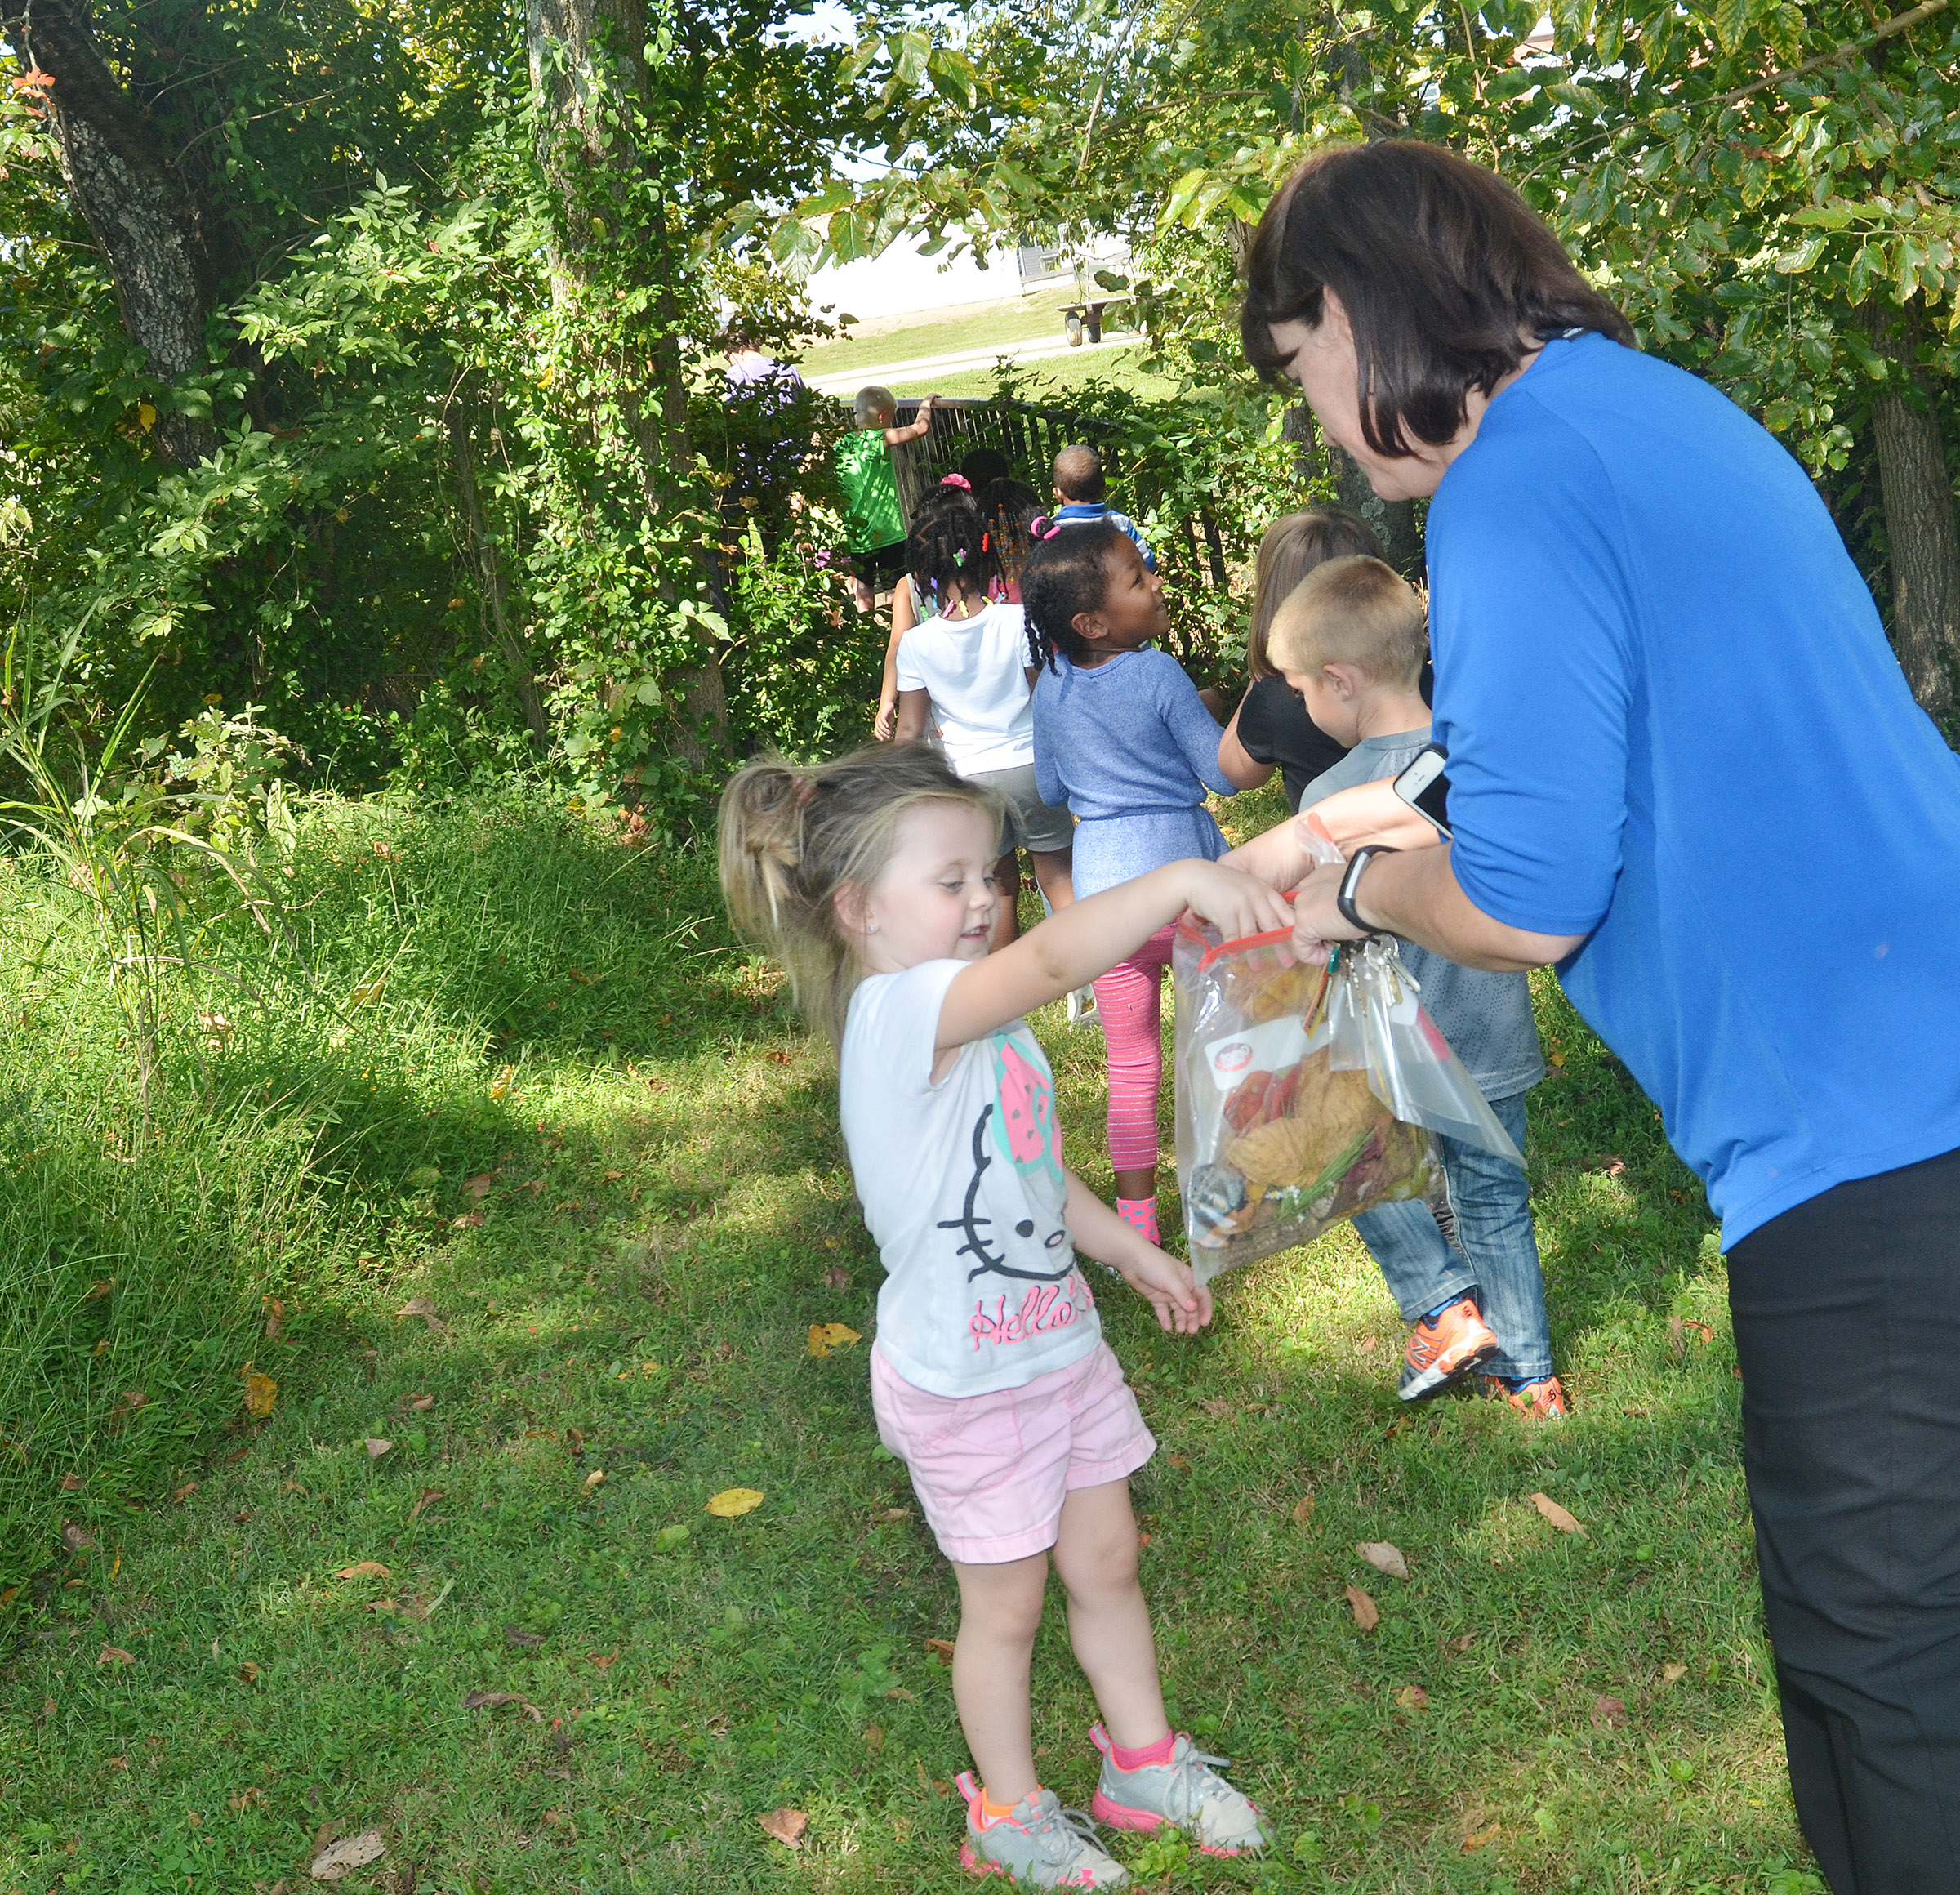 CES preschool teacher Denise Spencer collects leaves from student Tori Clark during their nature walk.